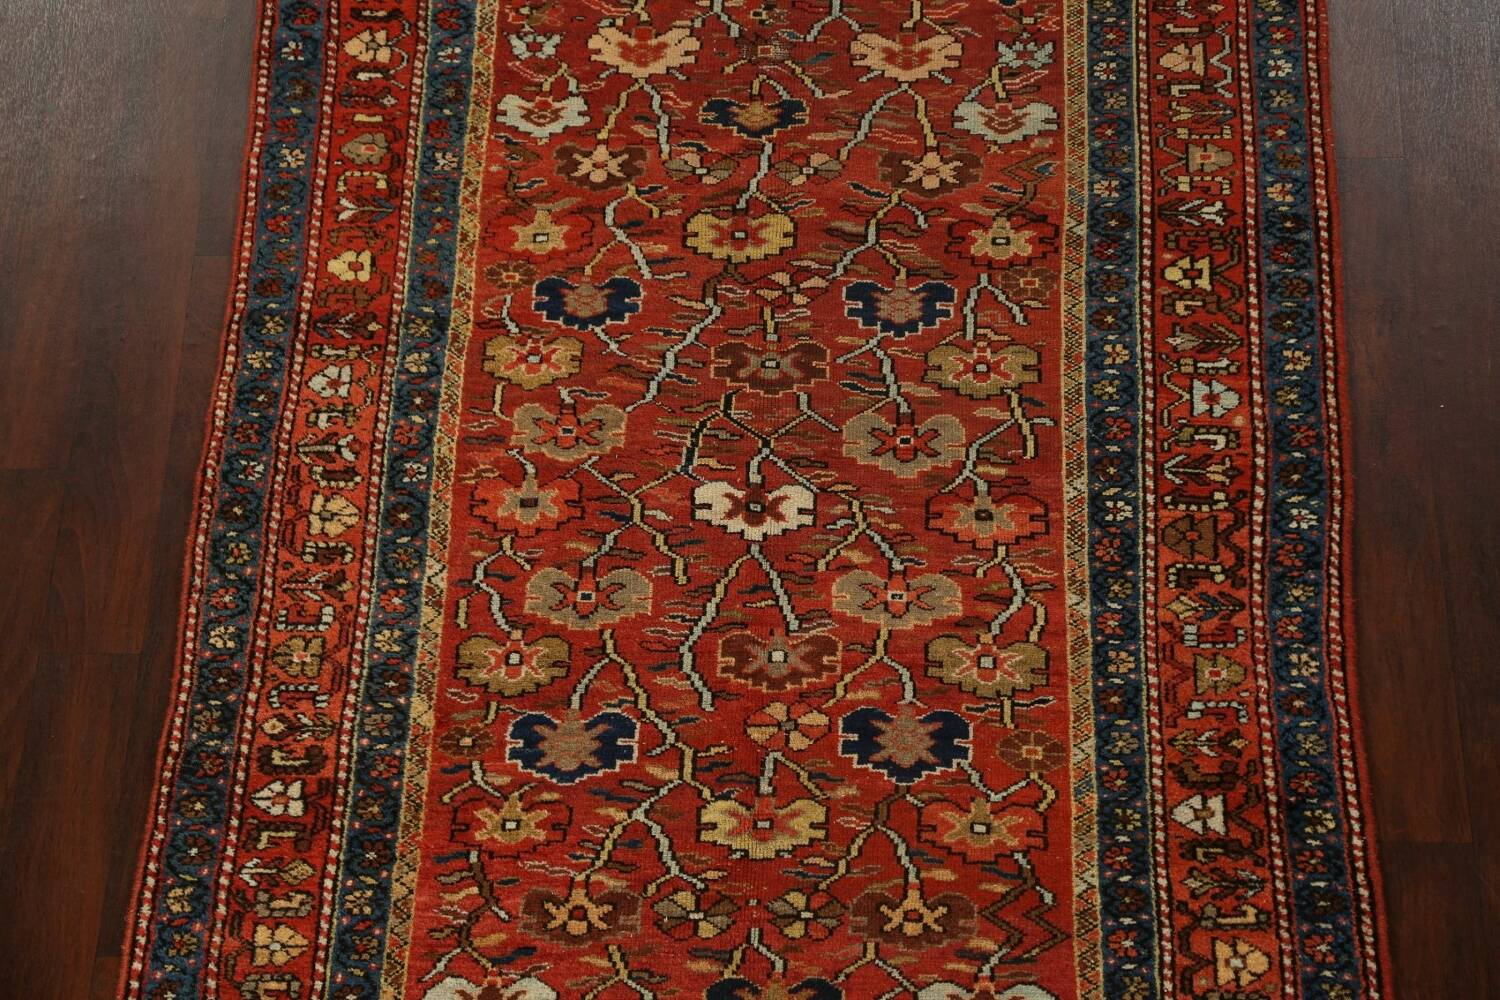 Pre-1900 Antique Vegetable Dye Sultanabad Persian Area Rug 5x10 image 3